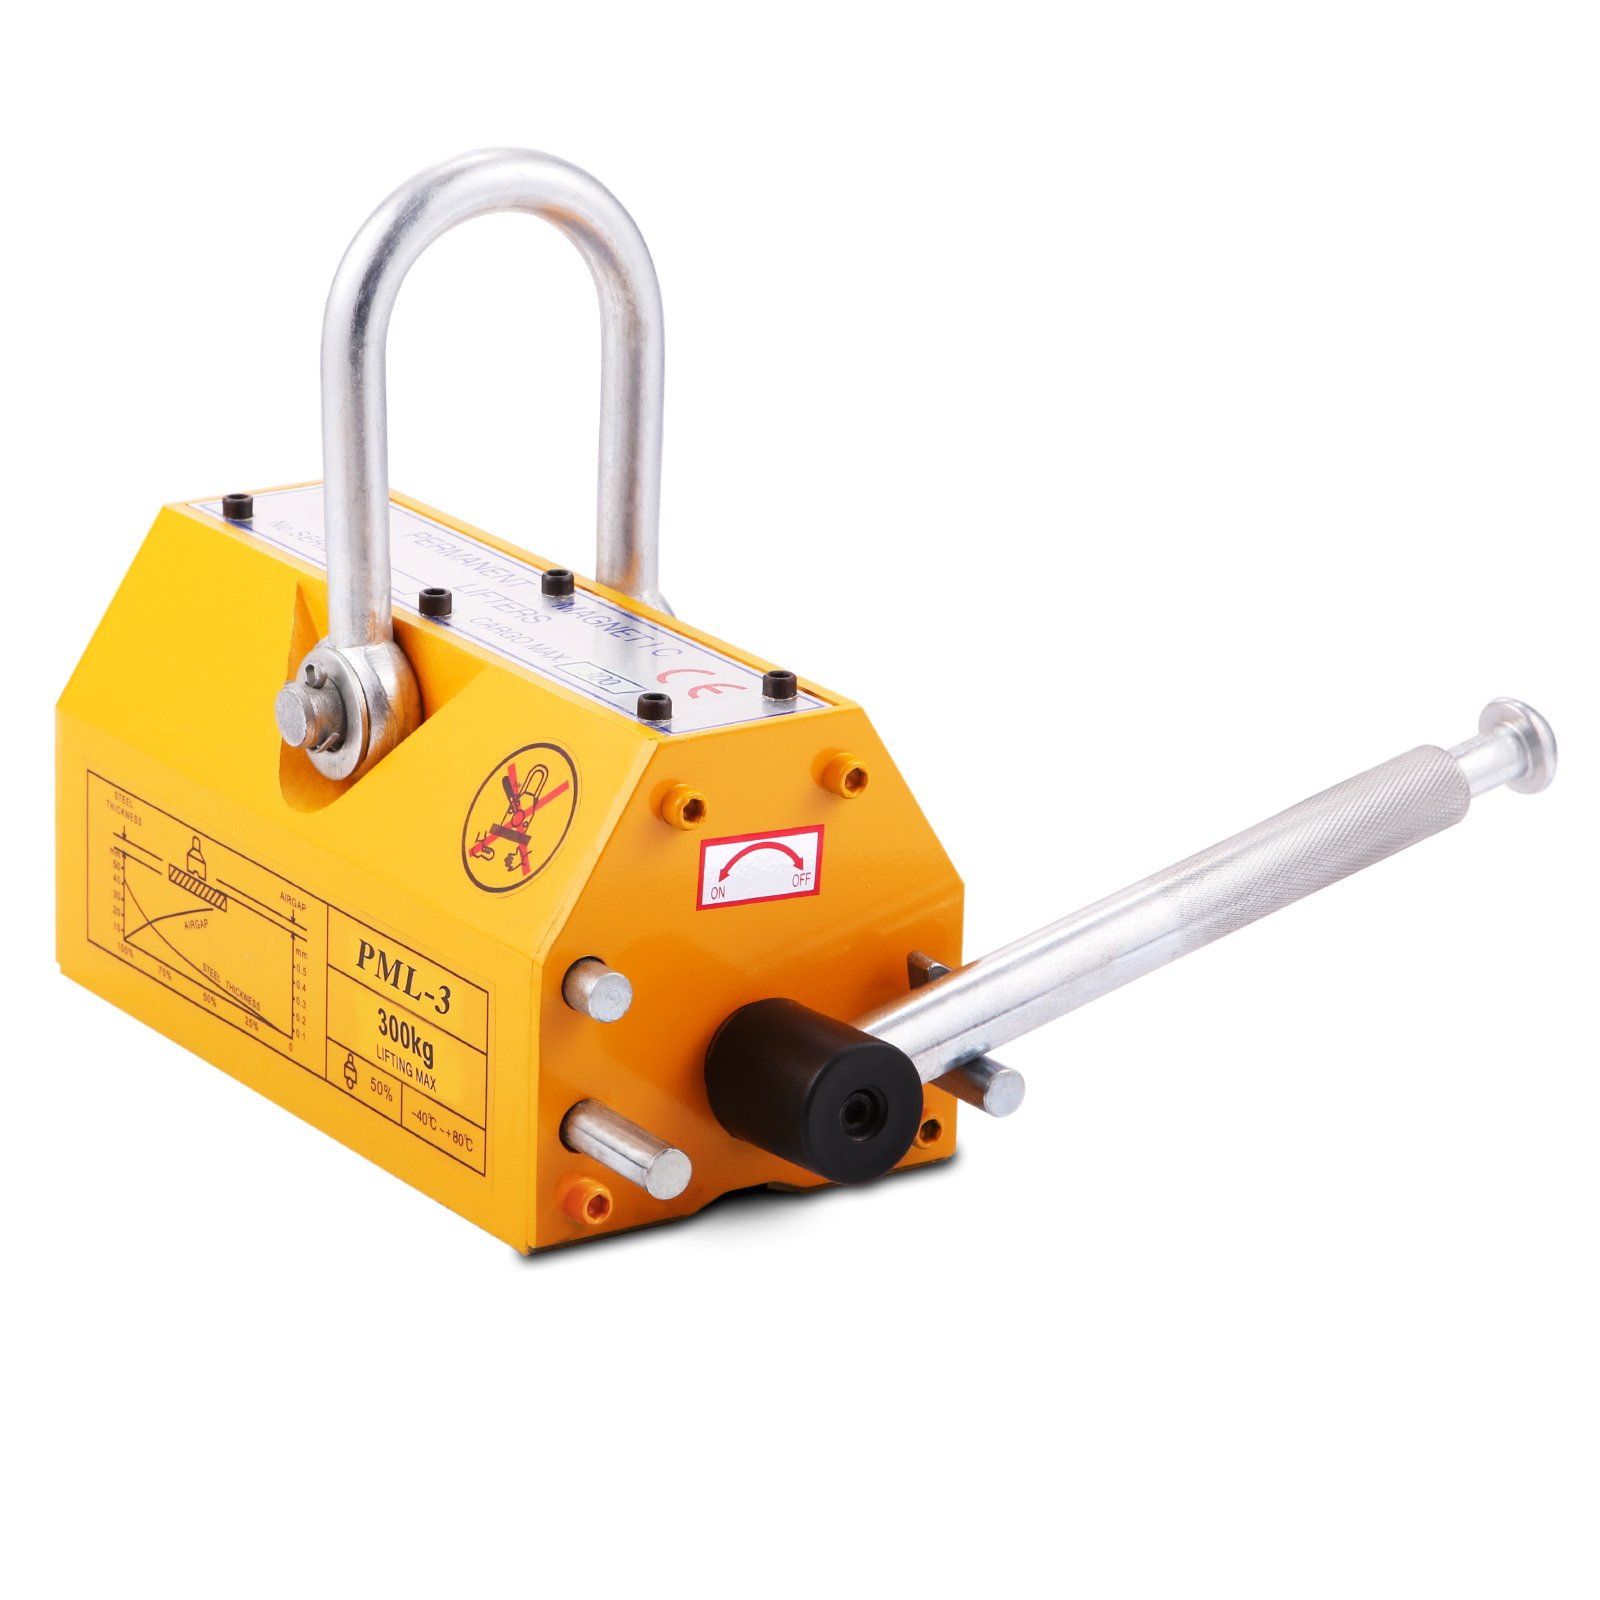 OrangeA 660LBS 300KG Steel Magnet Lifter Neodymium Magnetic Lifting Magnet Magnetic Shop Crane Metal Lifting Hoist (660LBS)